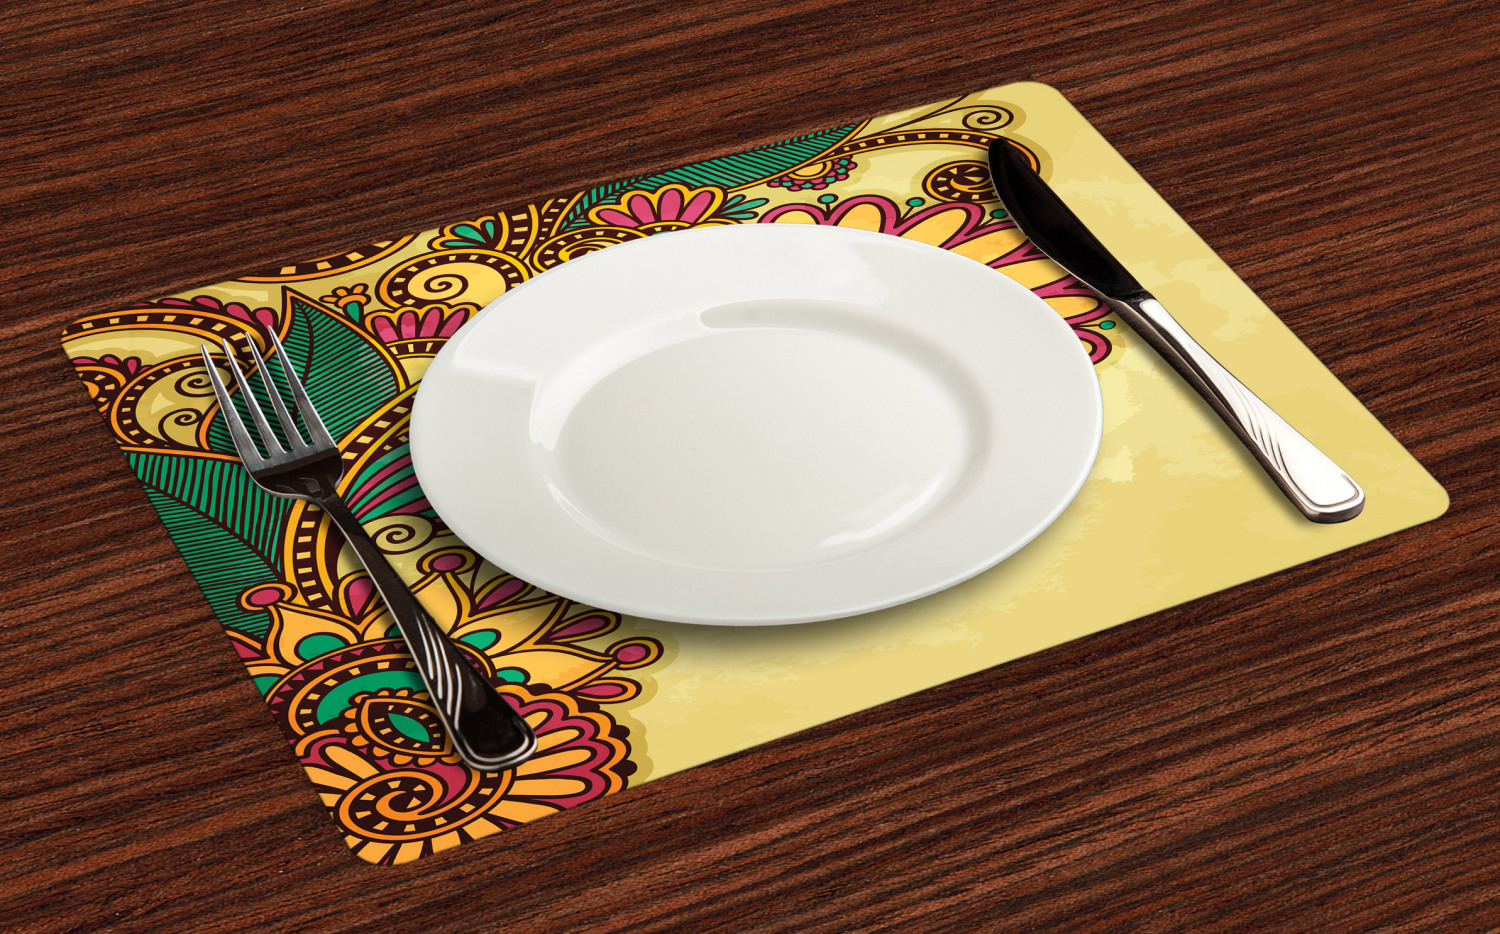 Ambesonne-Flower-Pattern-Placemat-Set-of-4-Fabric-Place-Mats-for-Table-Decor thumbnail 169